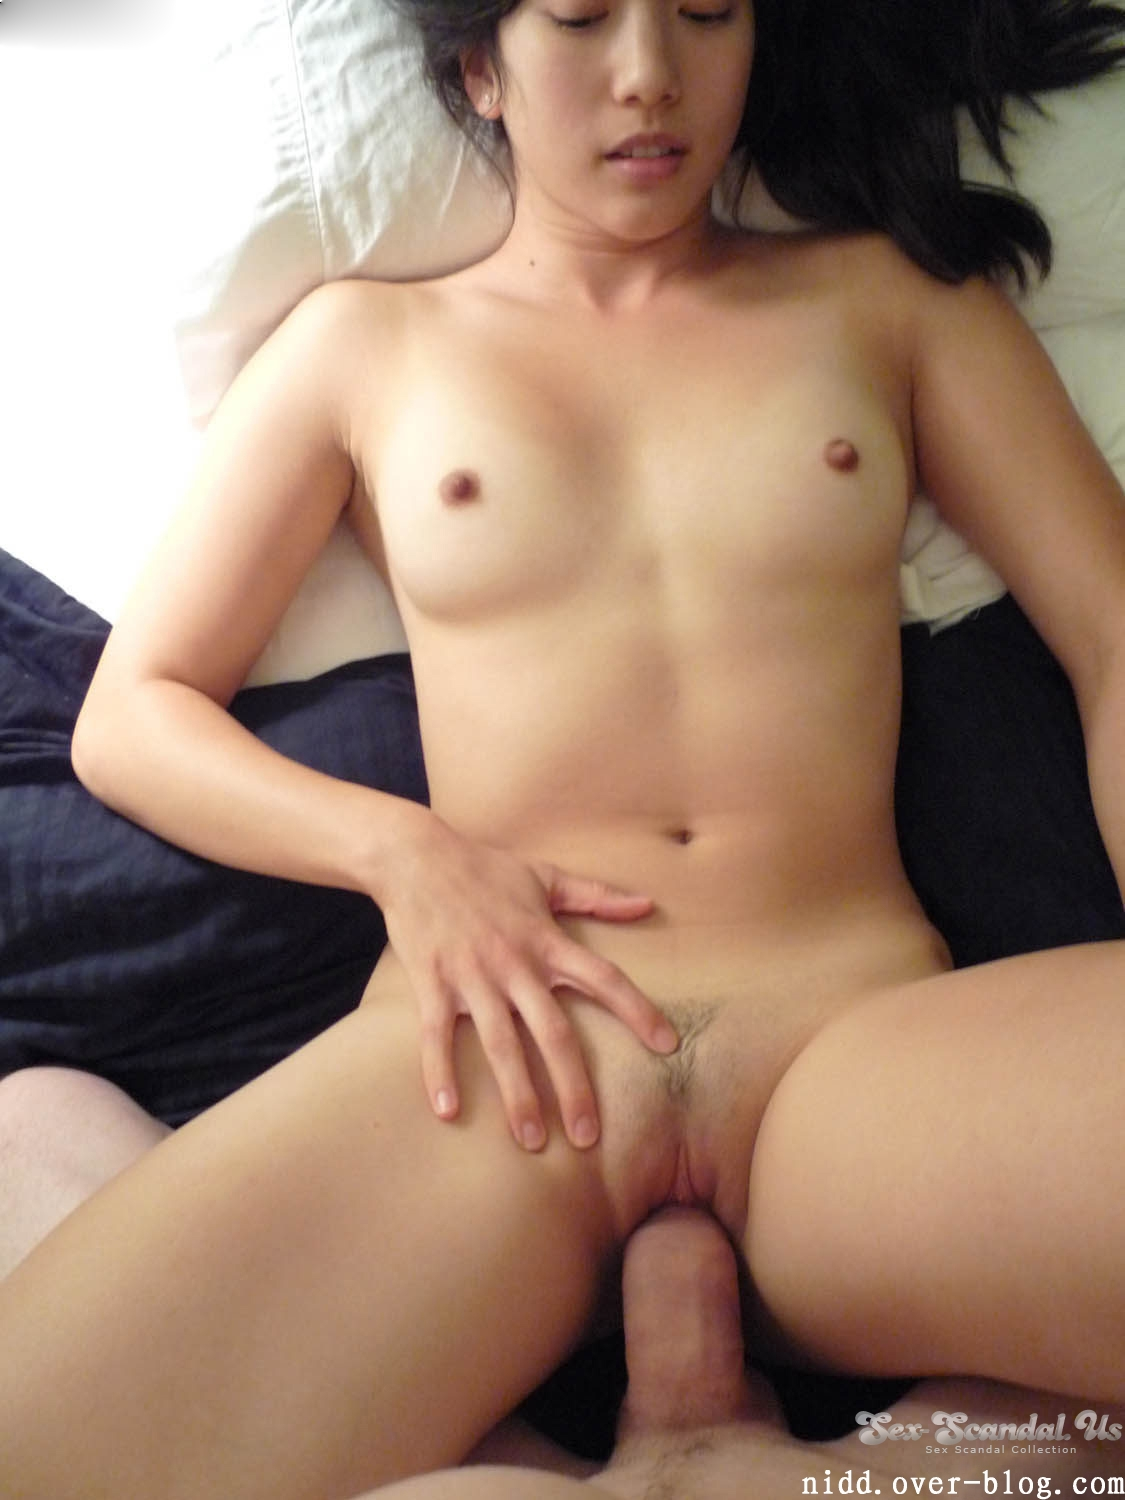 Asian American Girl Having Sex With Bf